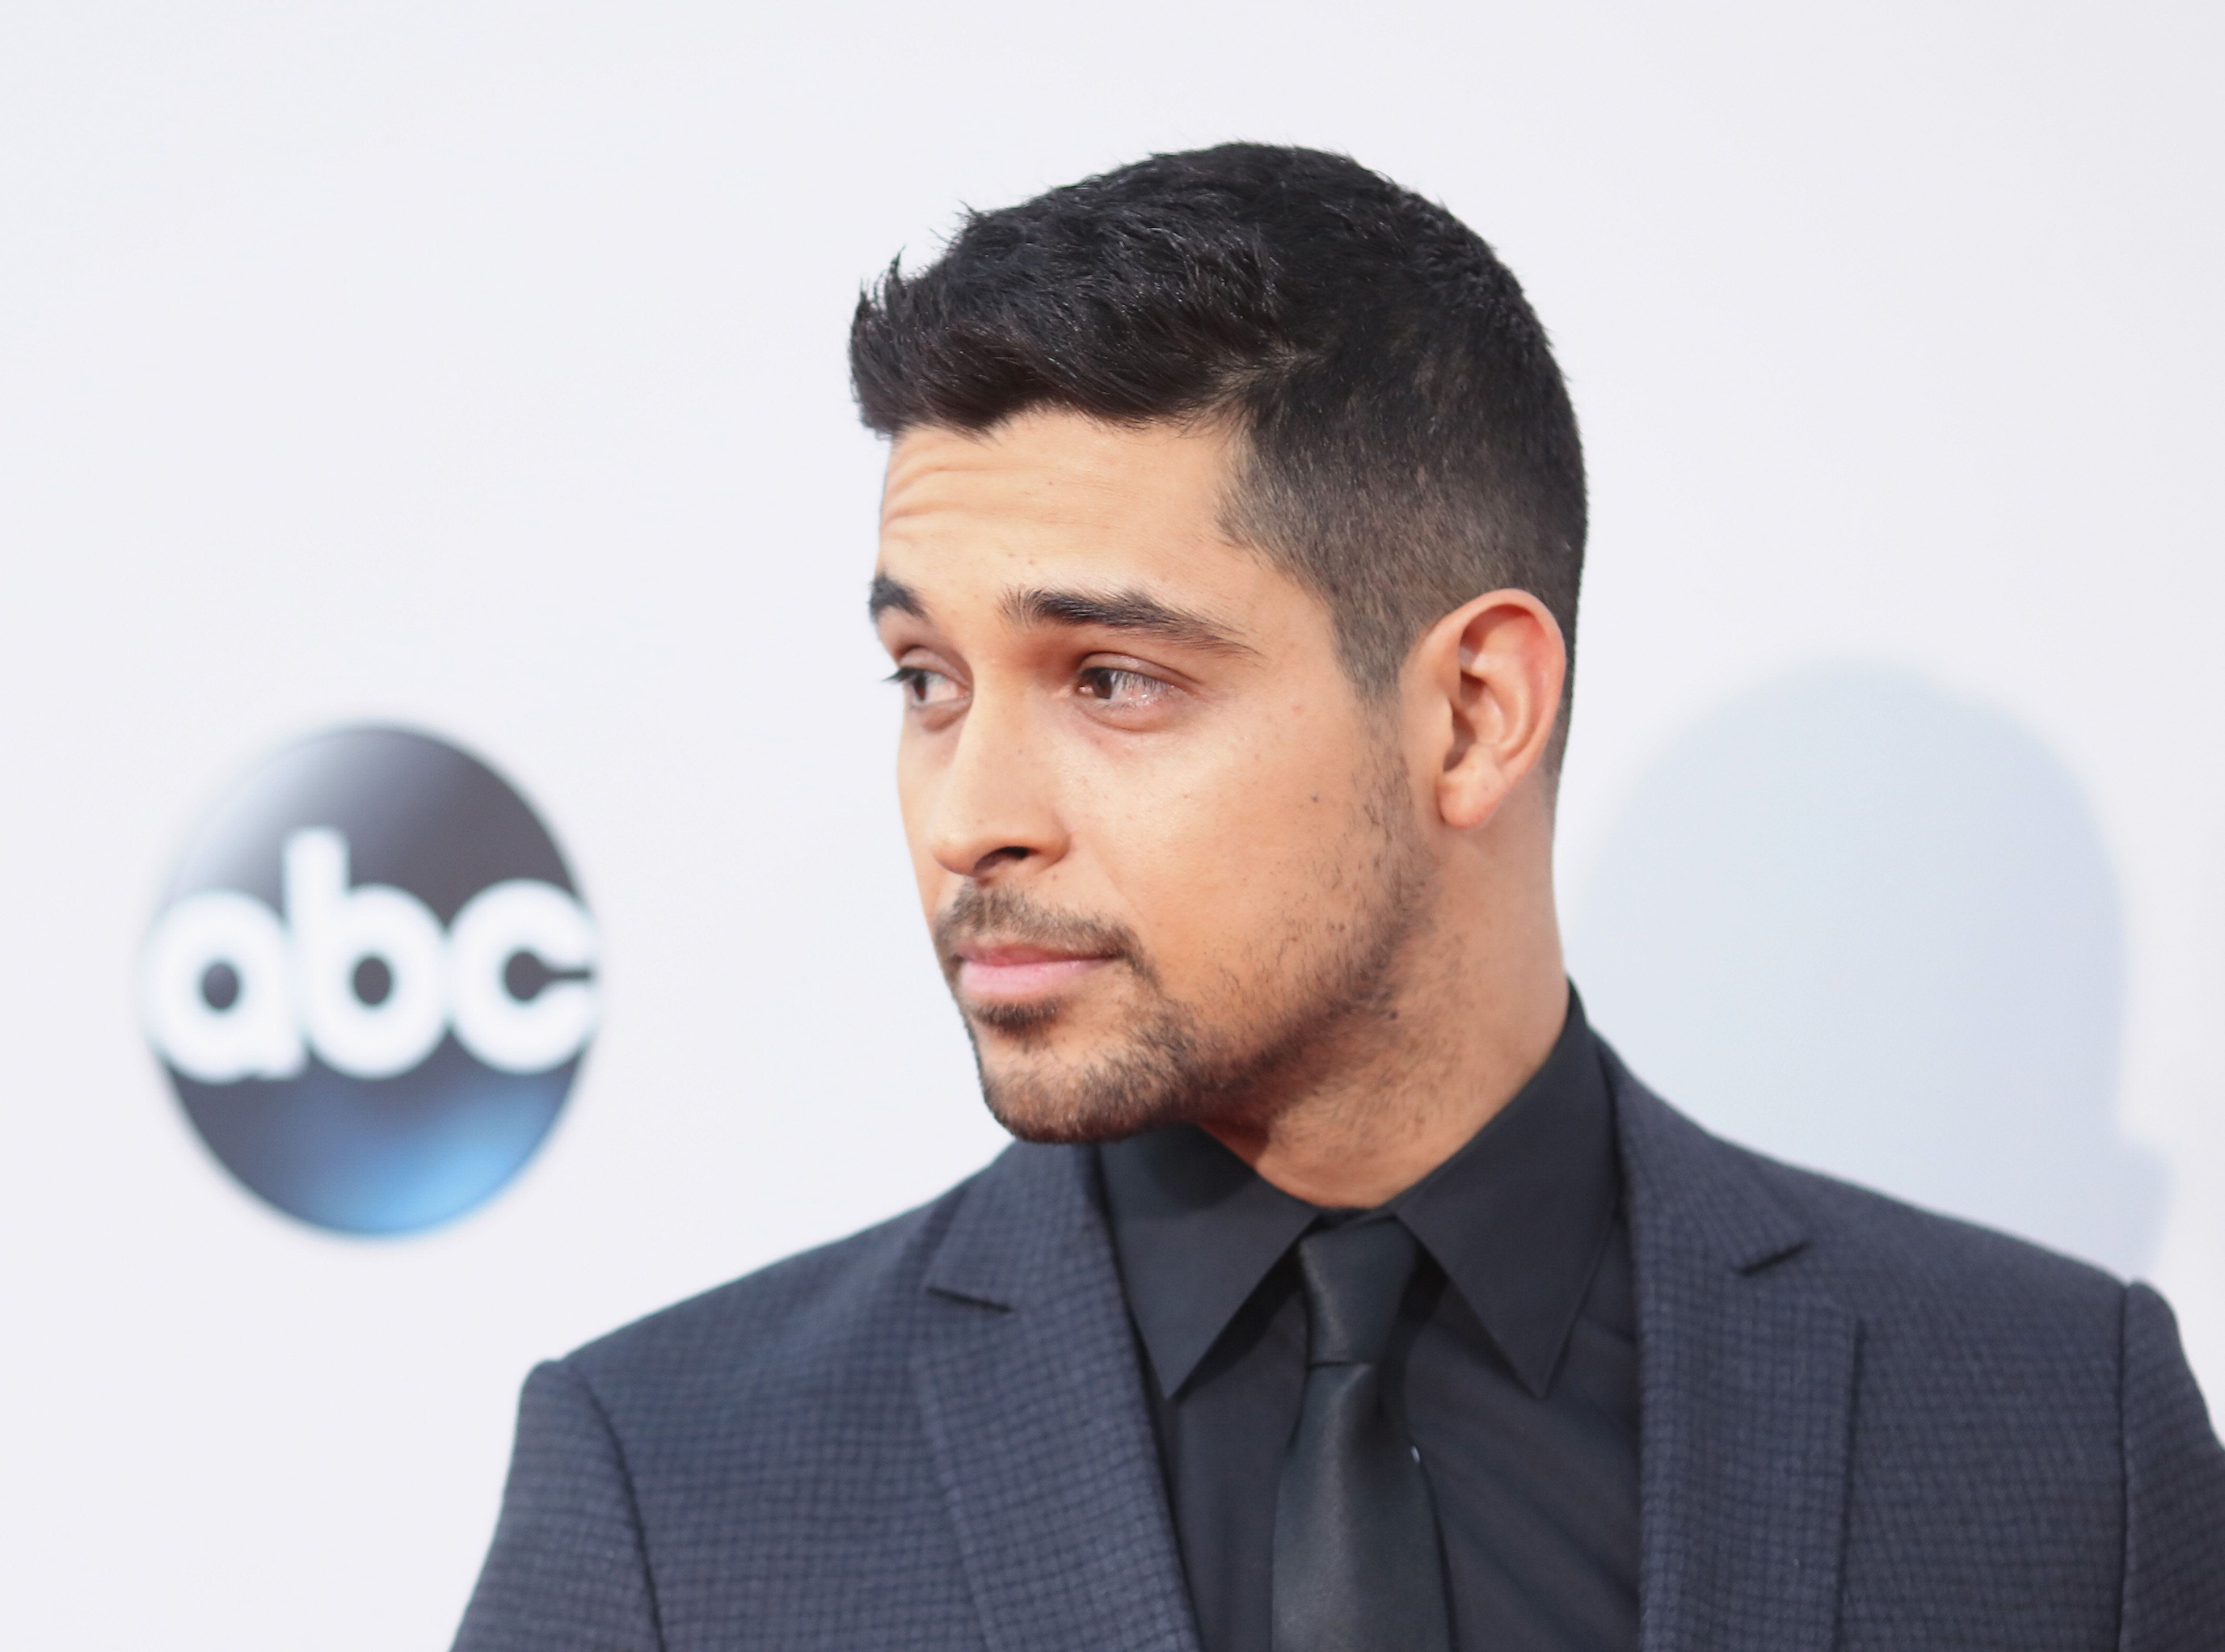 LOS ANGELES, CA - NOVEMBER 22: Actor Wilmer Valderrama attends the 2015 American Music Awards at Microsoft Theater on November 22, 2015 in Los Angeles, California.  (Photo by Mark Davis/Getty Images)